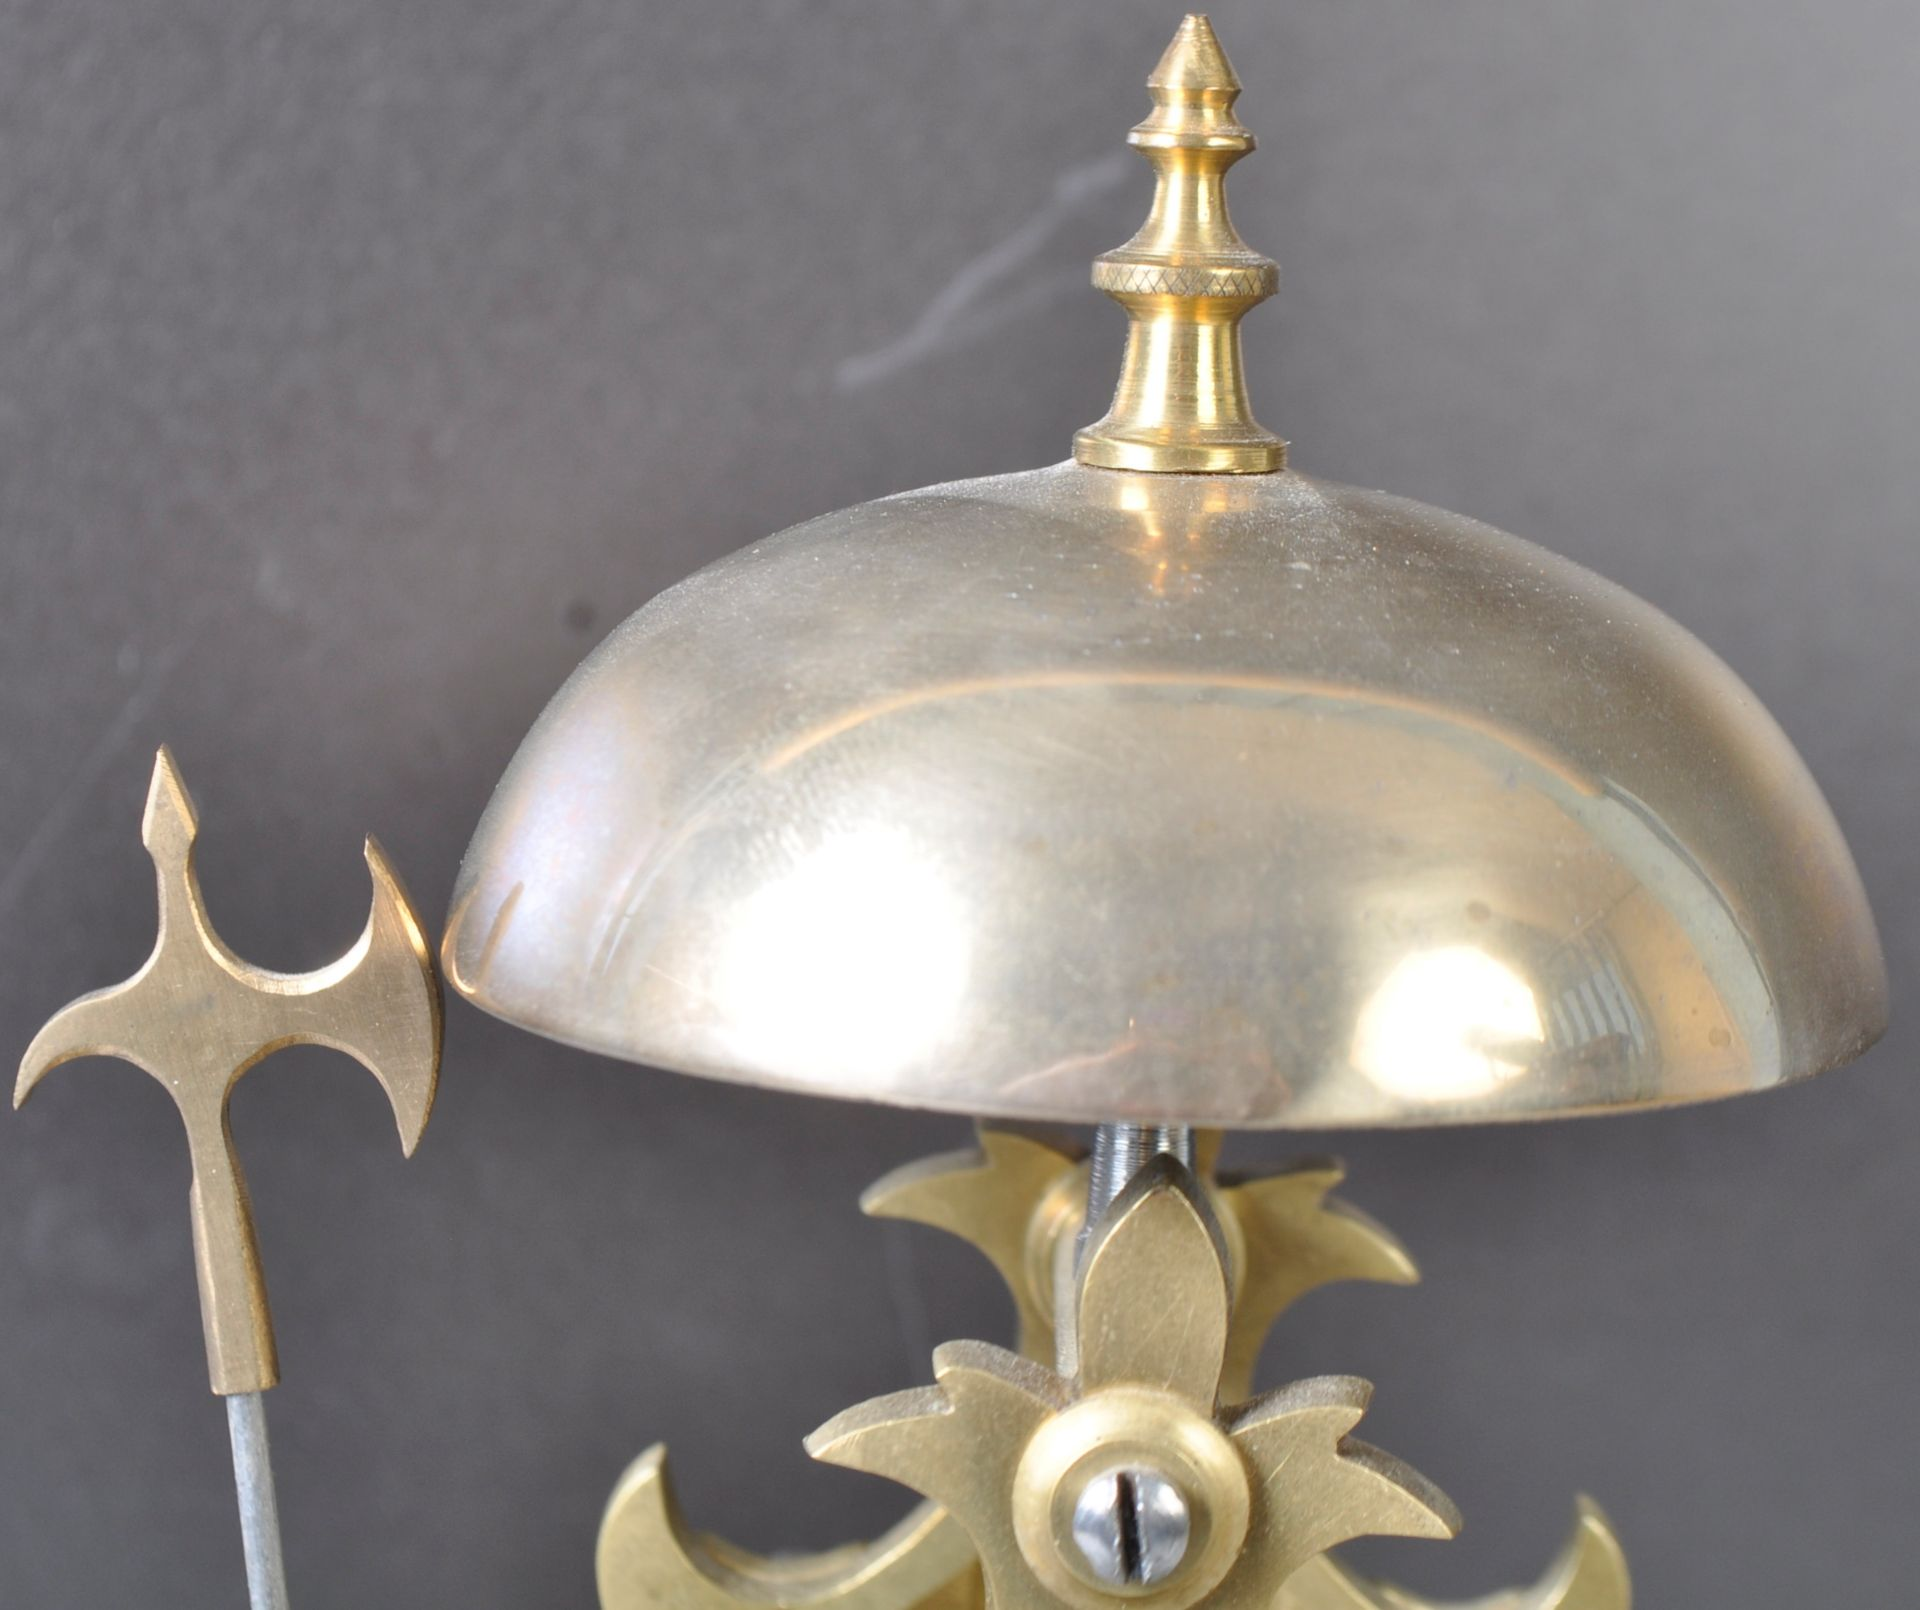 ANTIQUE MID 19TH CENTURY GOTHIC BRASS SKELETON CLOCK IN GLASS DOME - Image 5 of 13